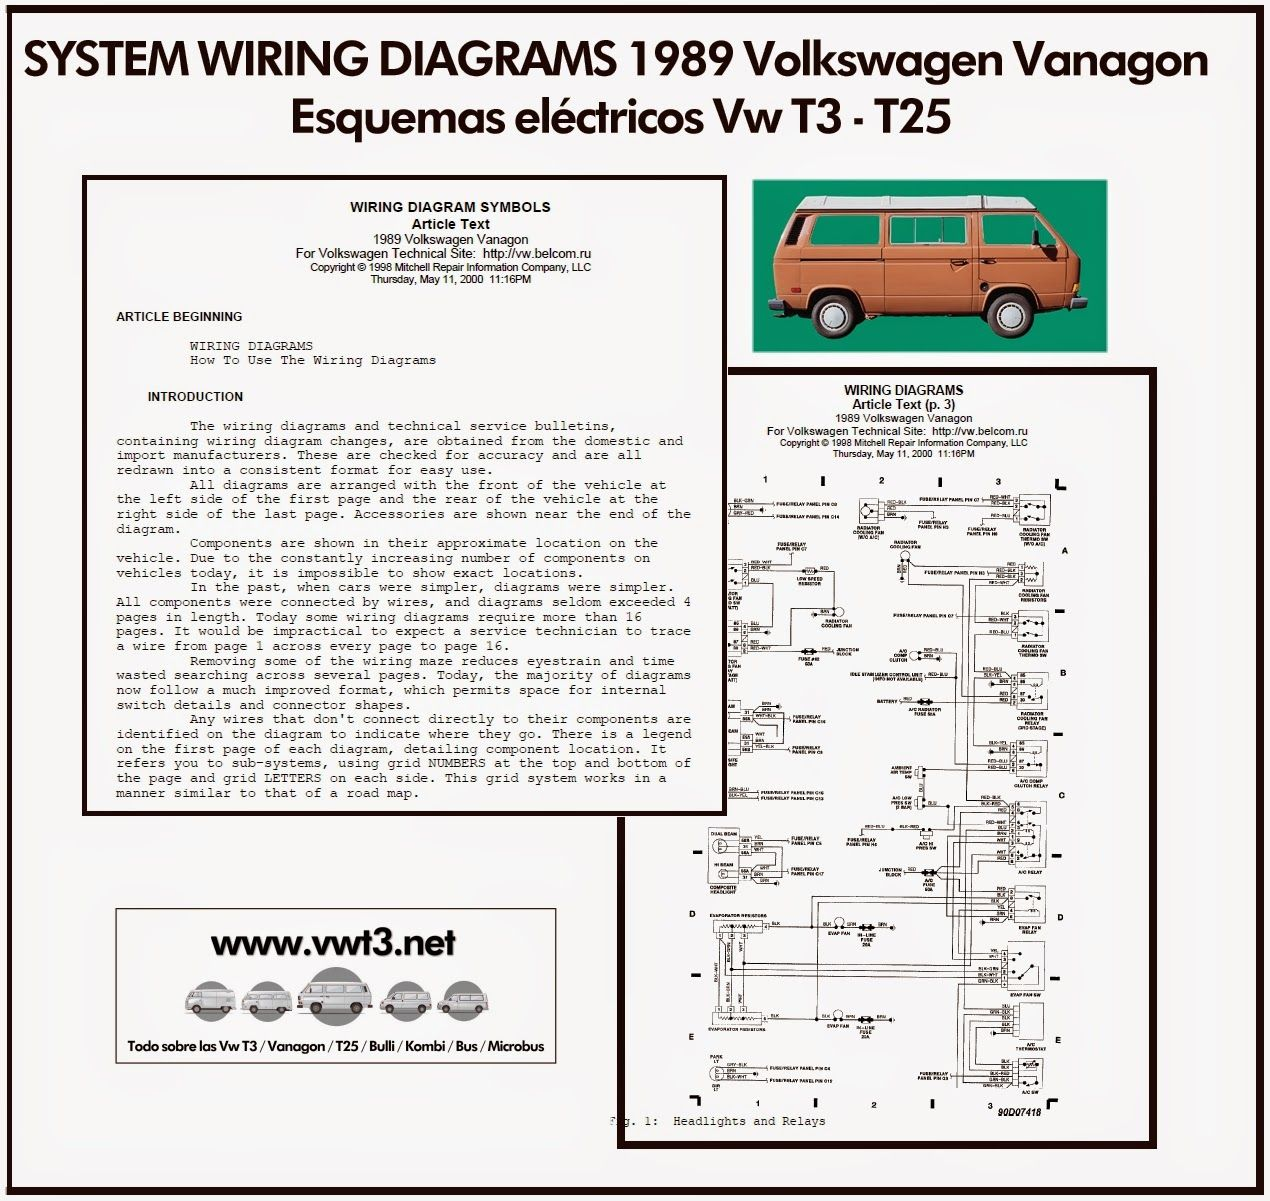 Vw T3 T25 SYSTEM WIRING DIAGRAMS 1989